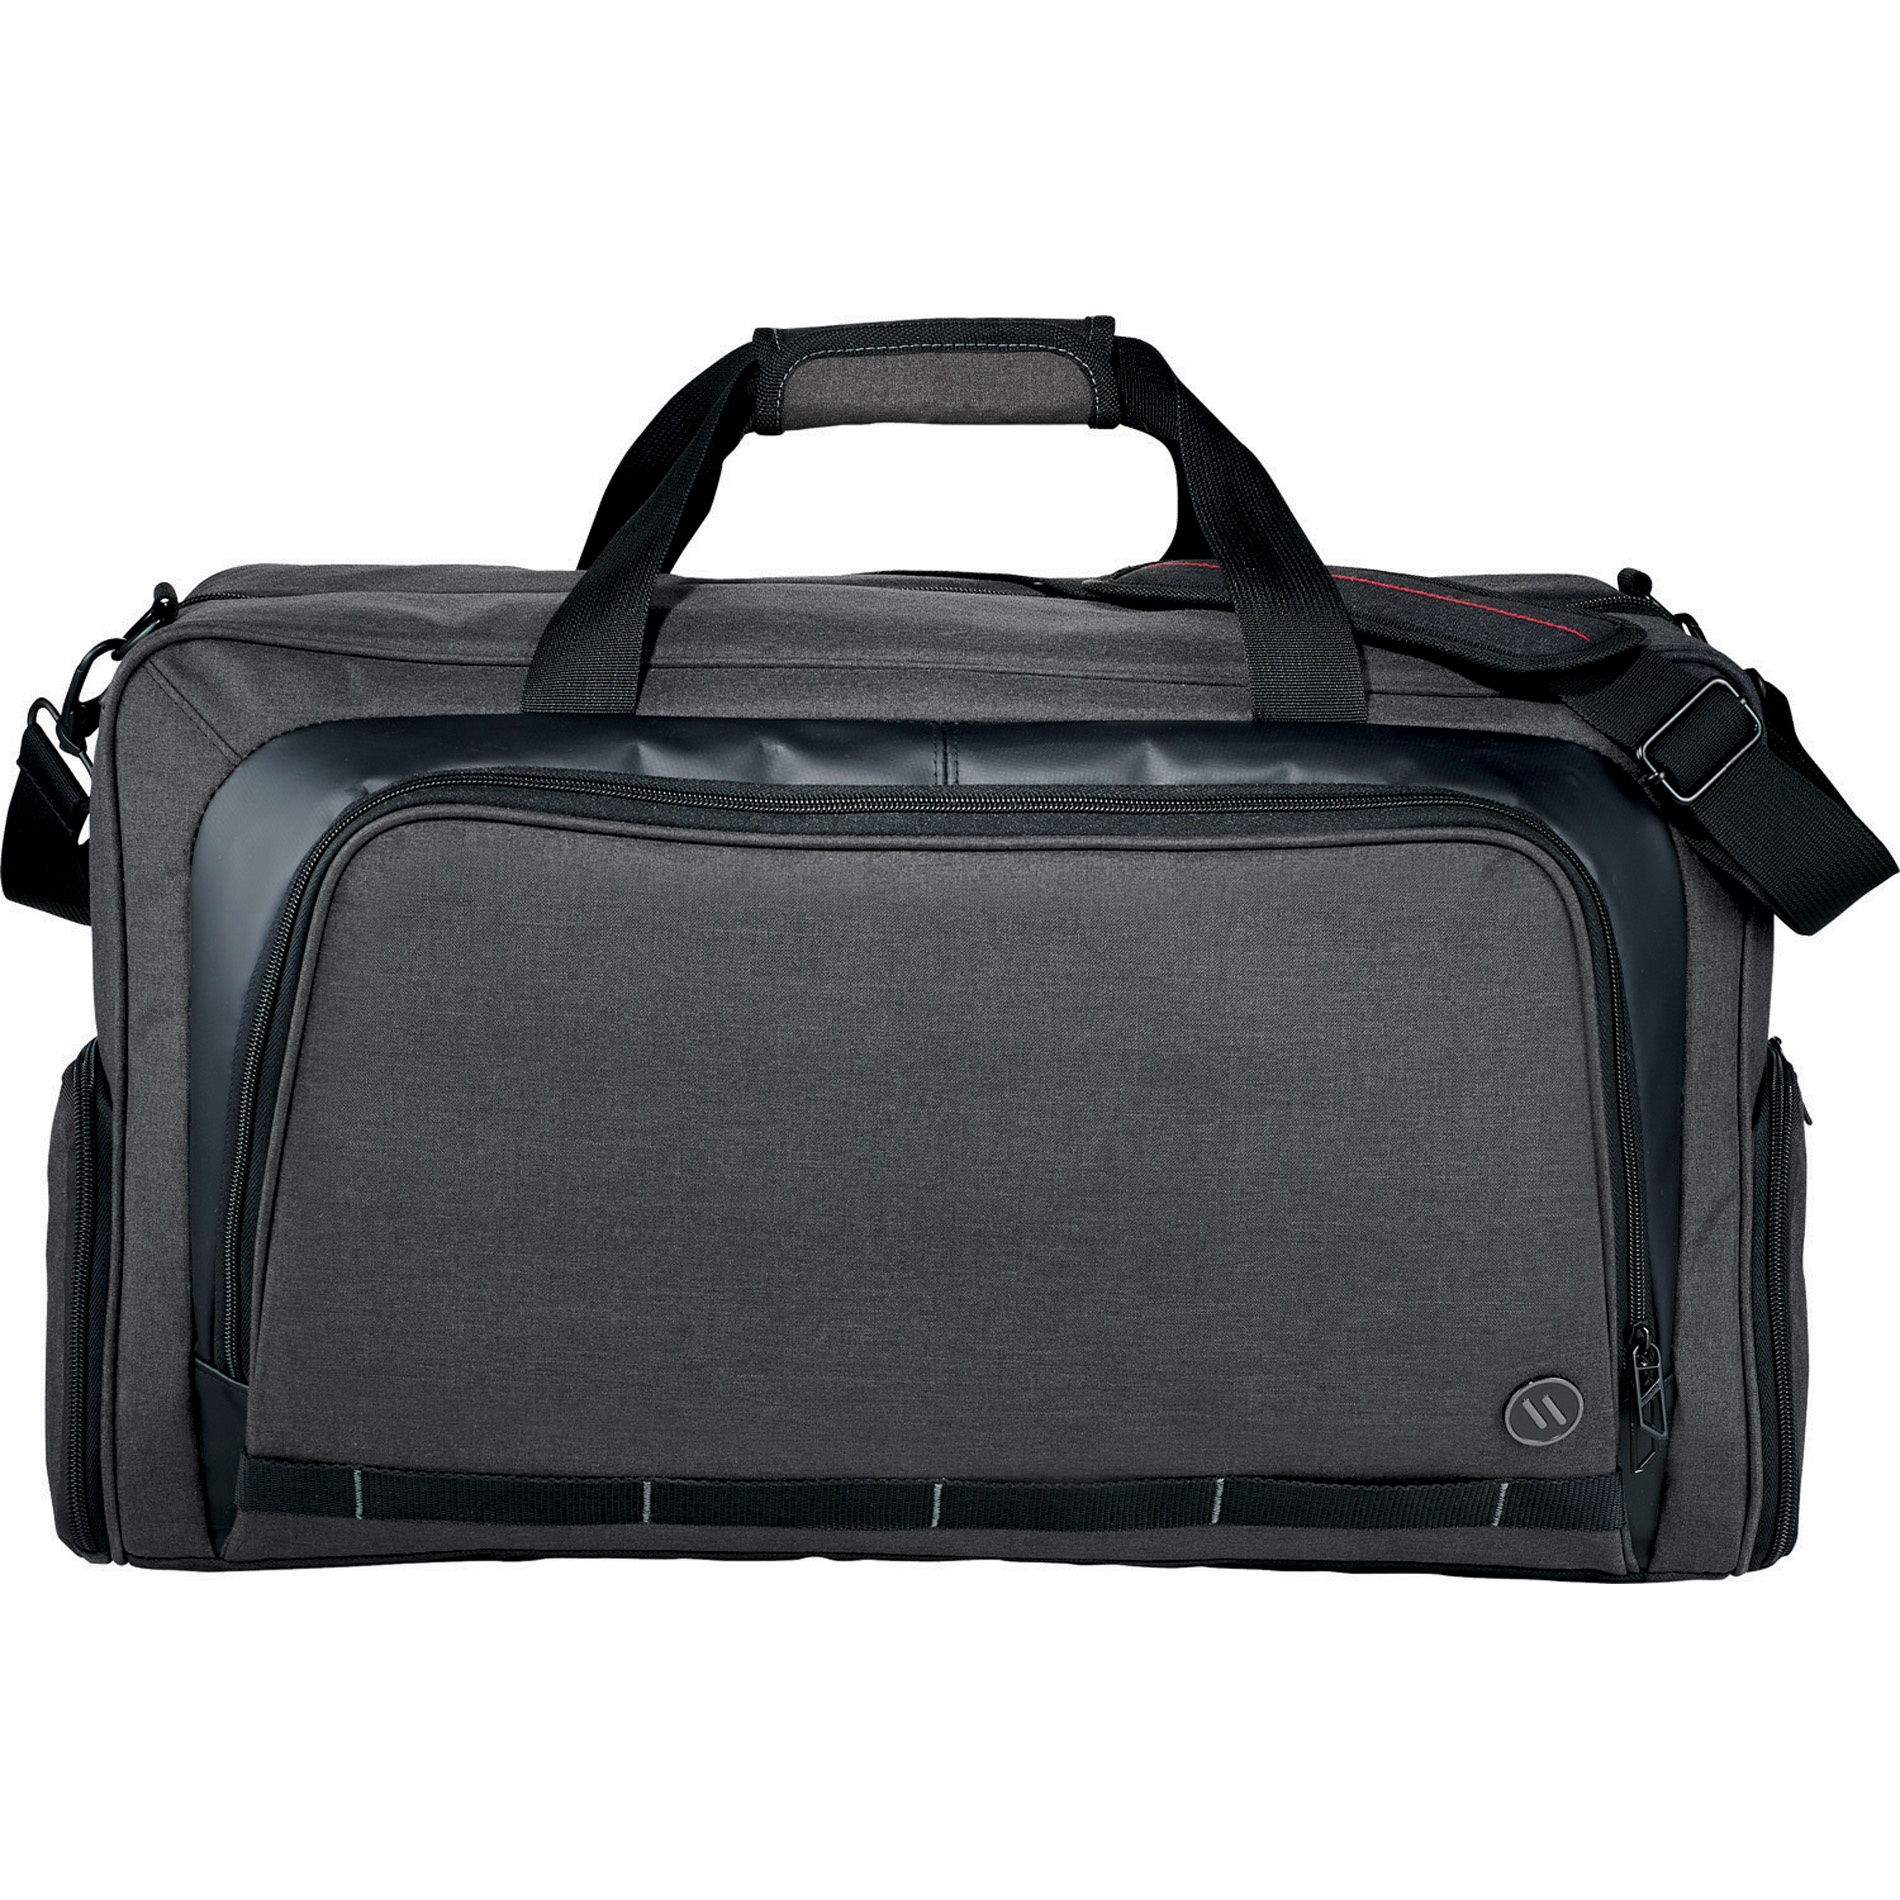 elleven 0011-43 - 22 Squared Duffel with Garment Bag